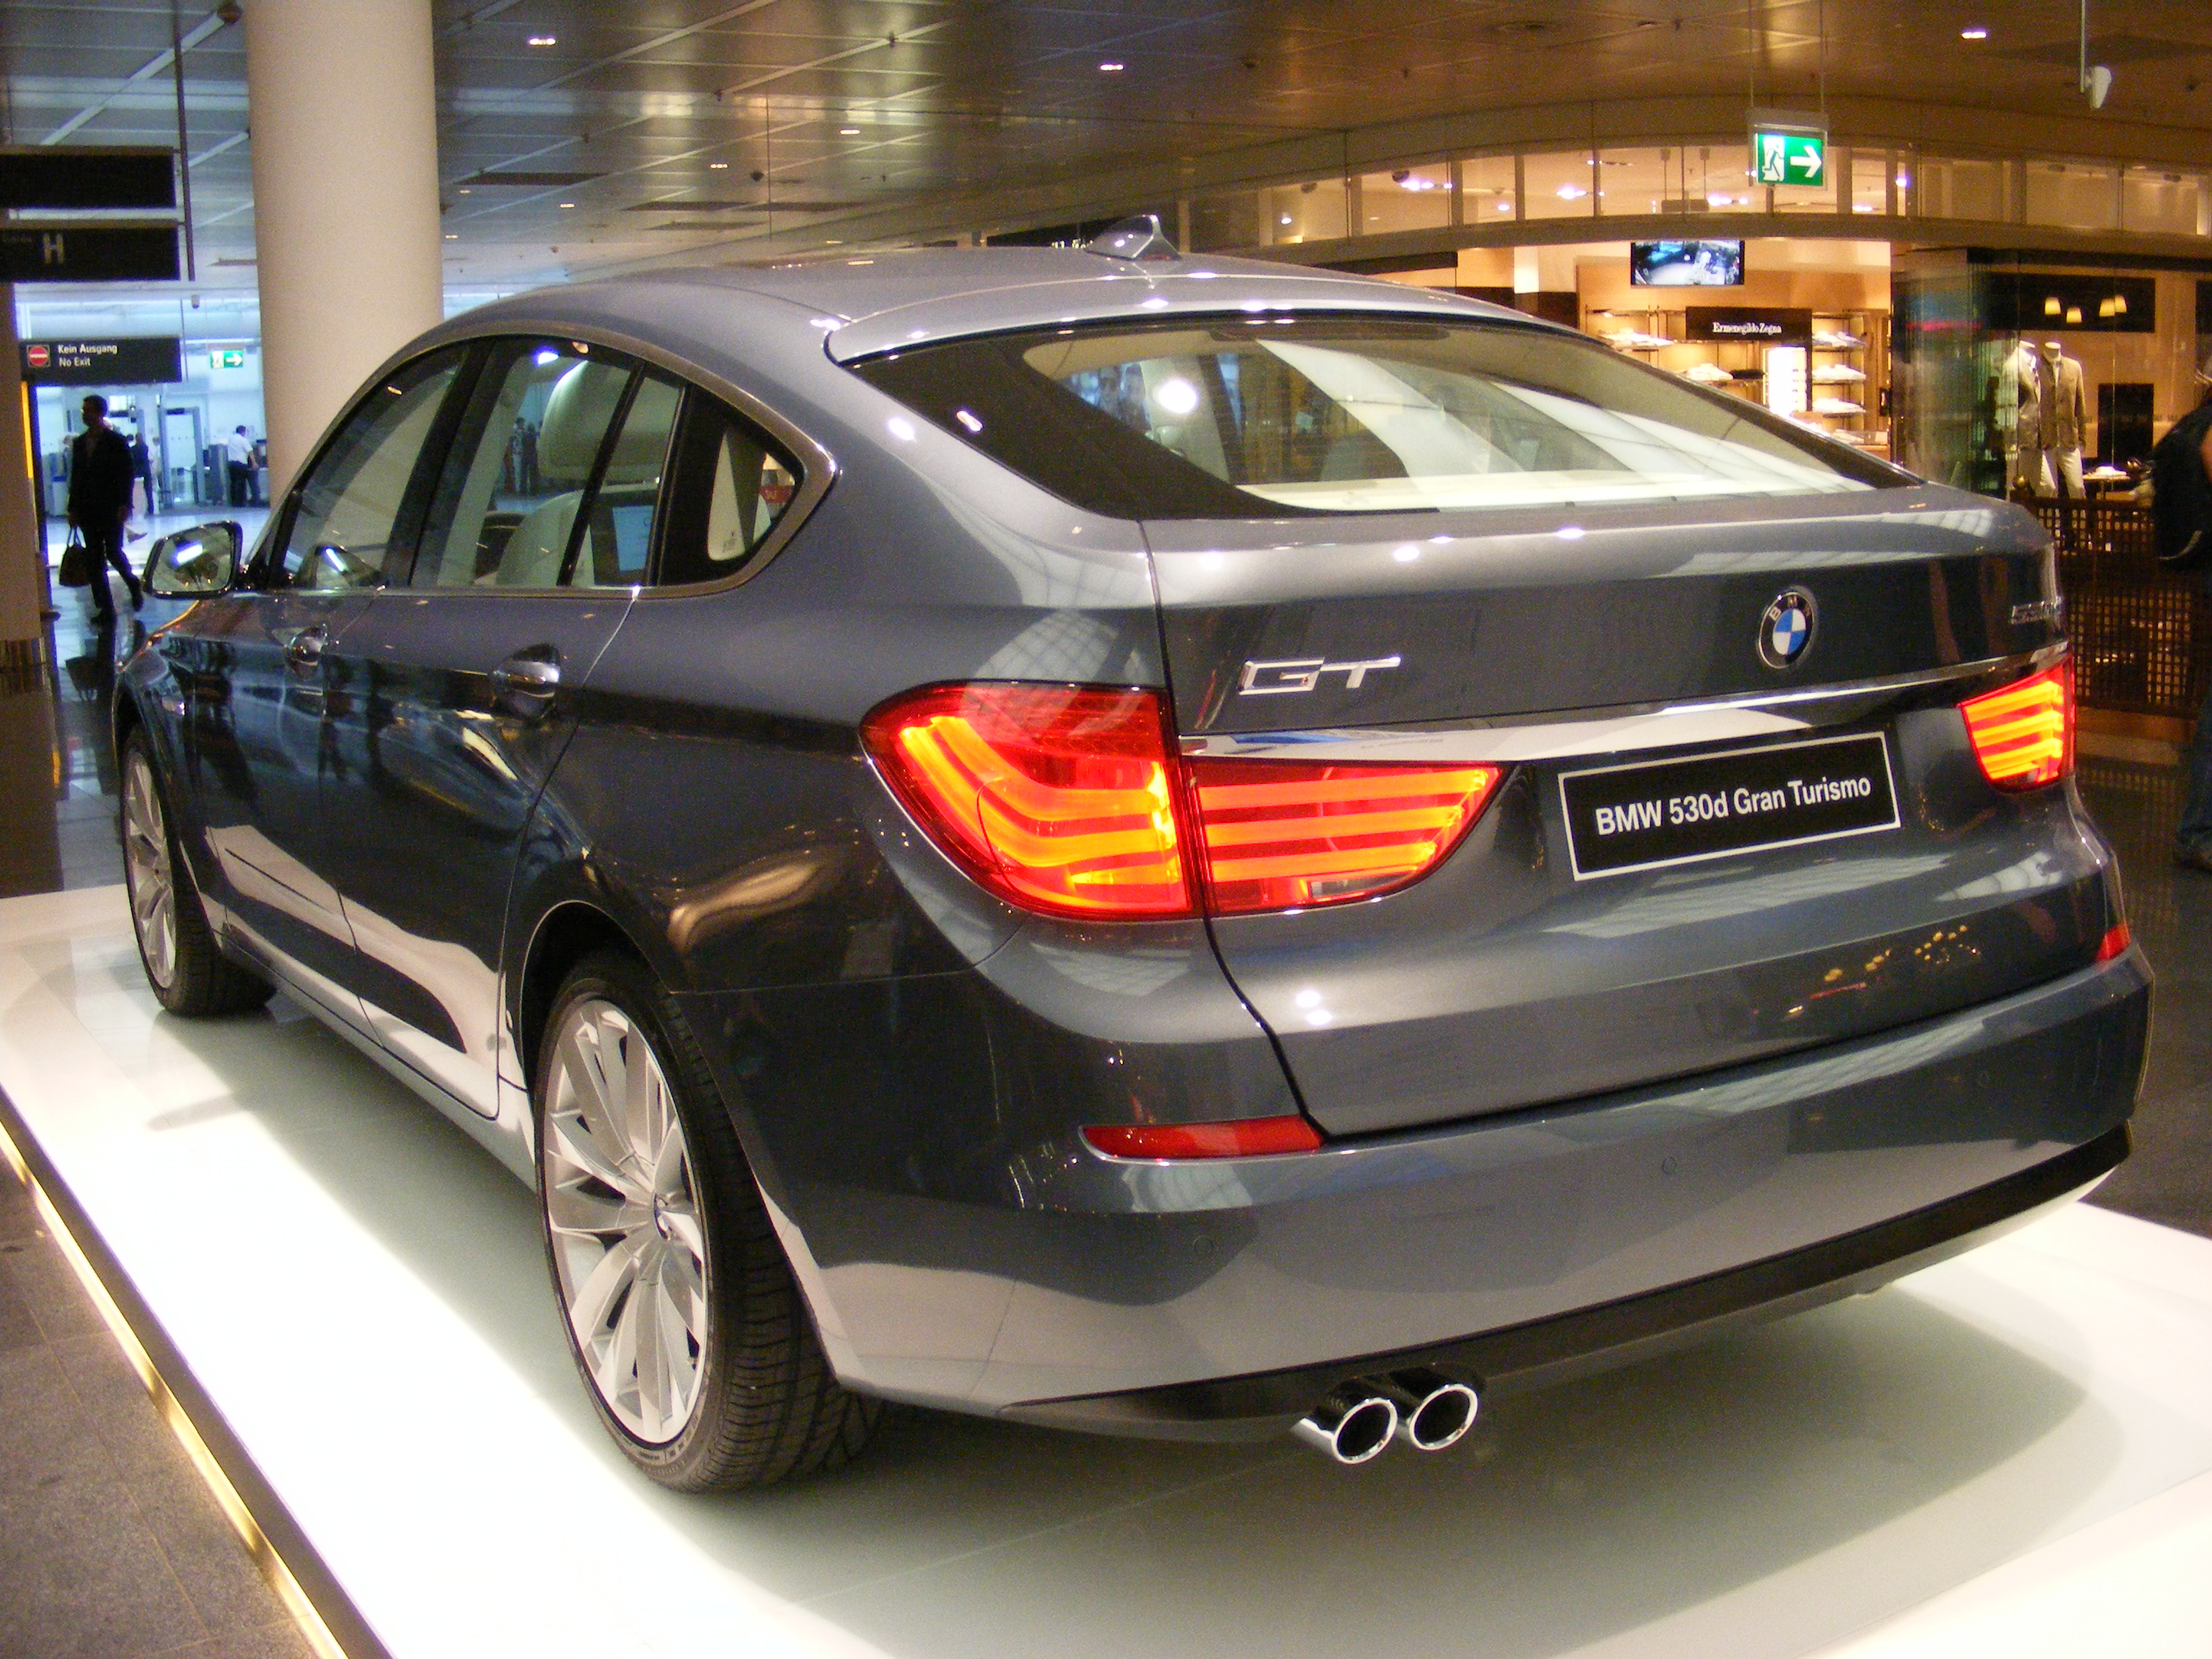 New Bmw 530d Gran Tourismo With Specification And Previews Prices